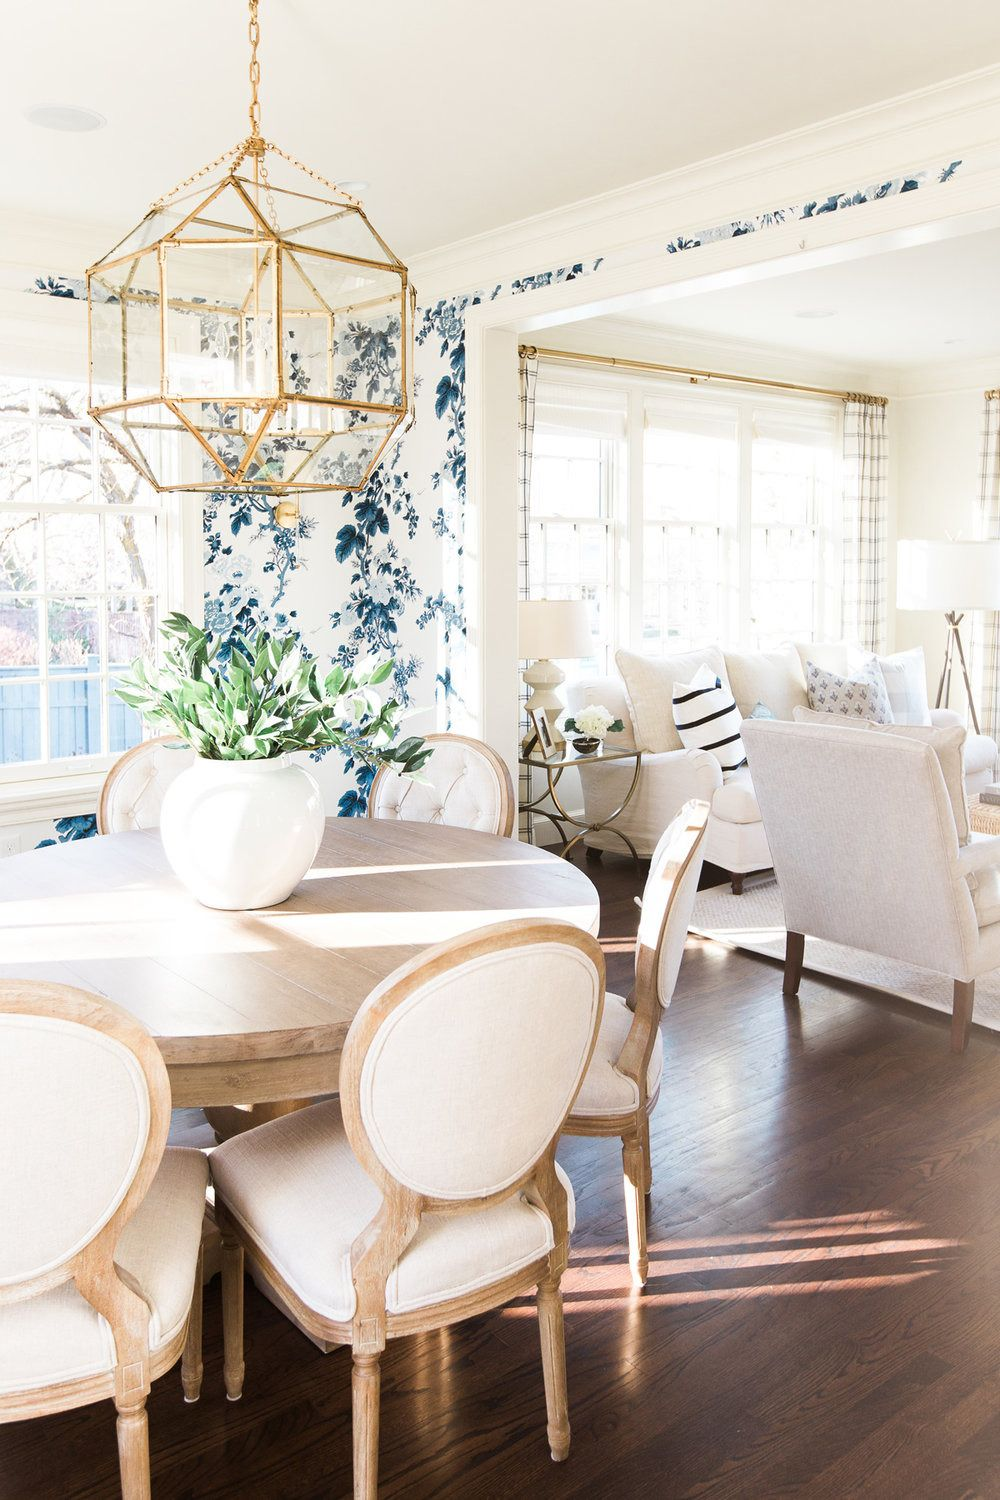 Find The Best Dining Room Design For 2018 And Transform Your Table Centerpiece Ideas Seat